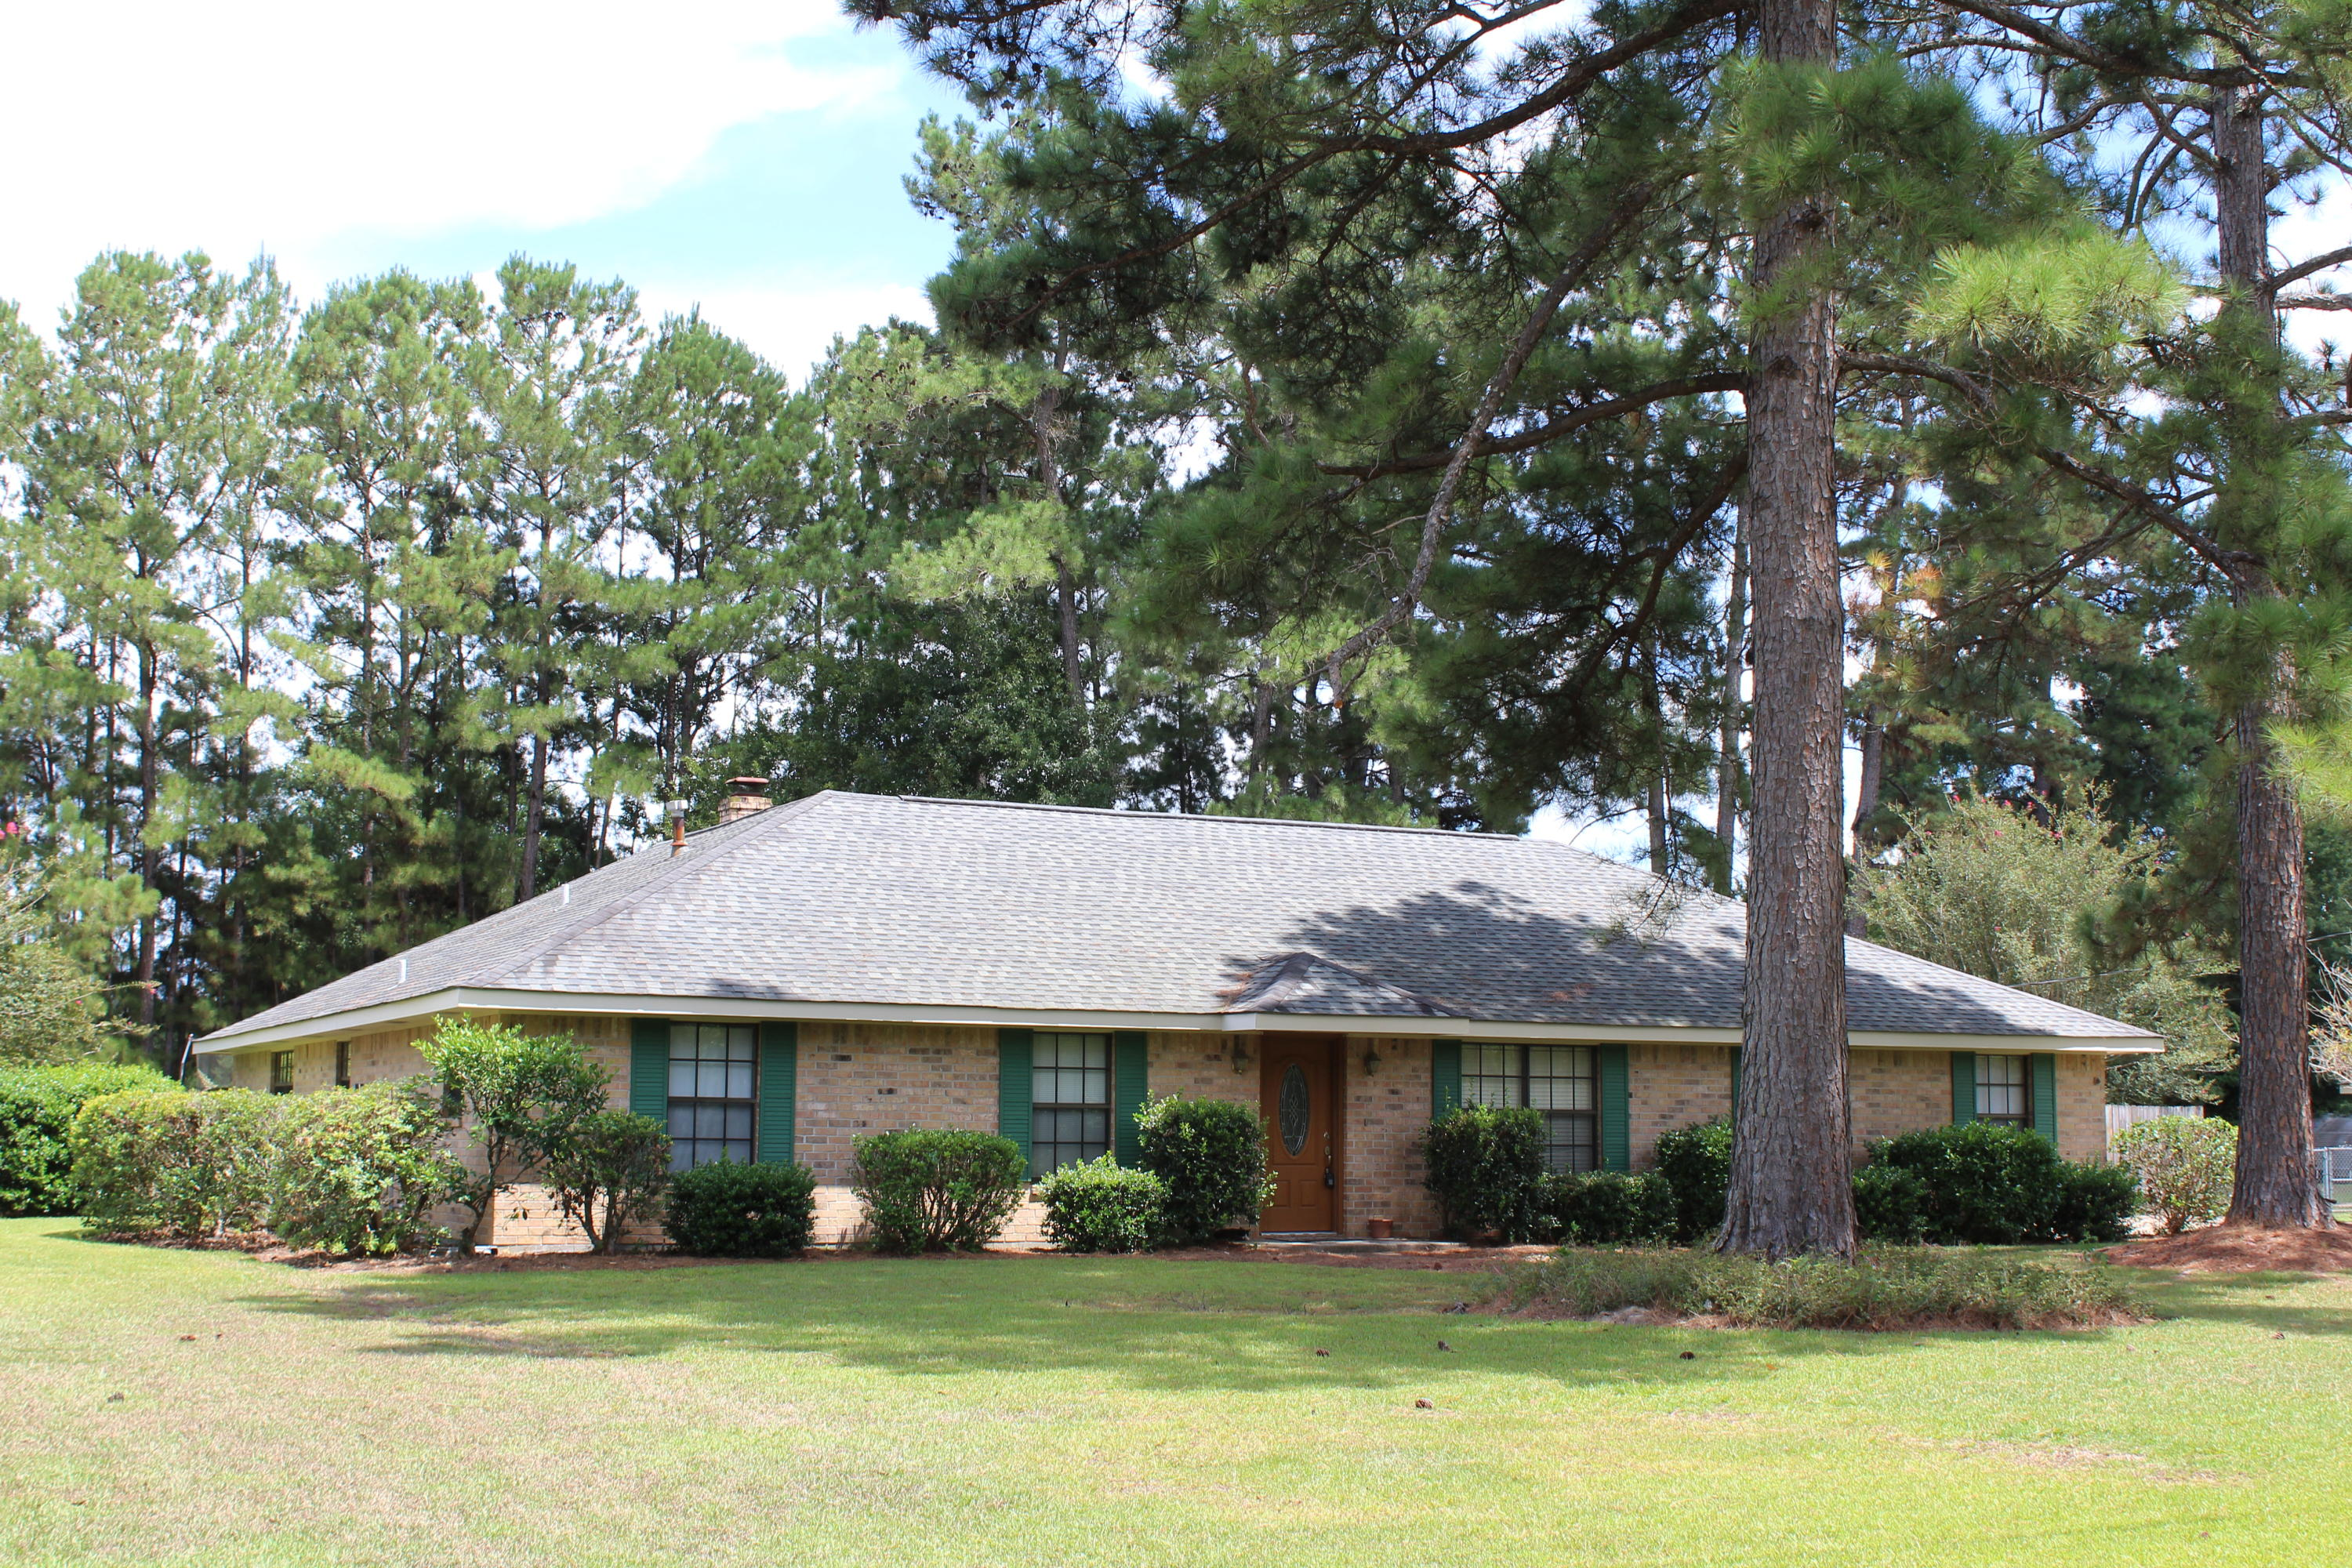 DeRidder home for sale, 1660 Glendale Rd, DeRidder LA - $189,000